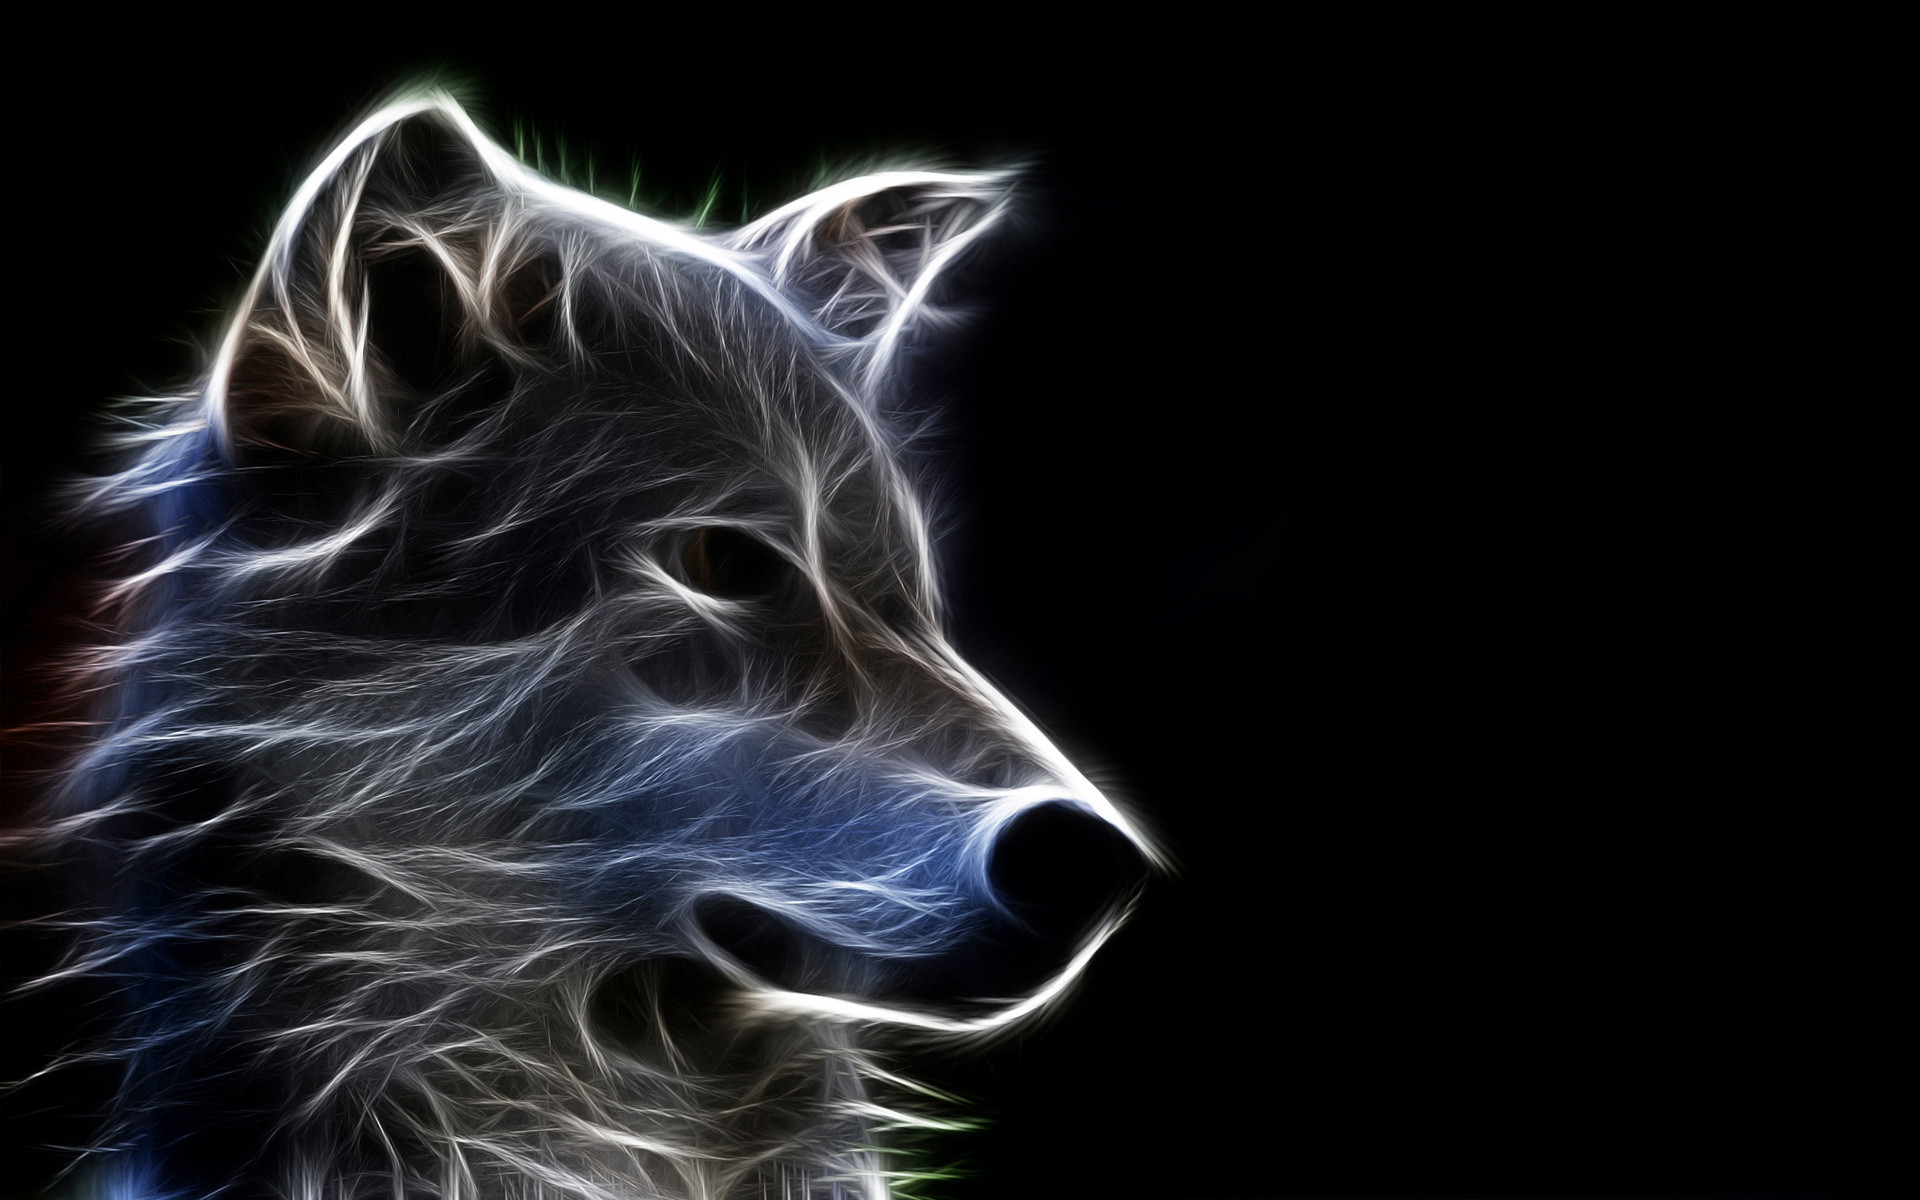 1920x1200 920 Wolf HD Wallpapers | Backgrounds - Wallpaper Abyss lightanimals |  Animal Wallpaper Light cool animal hd wallpaper .